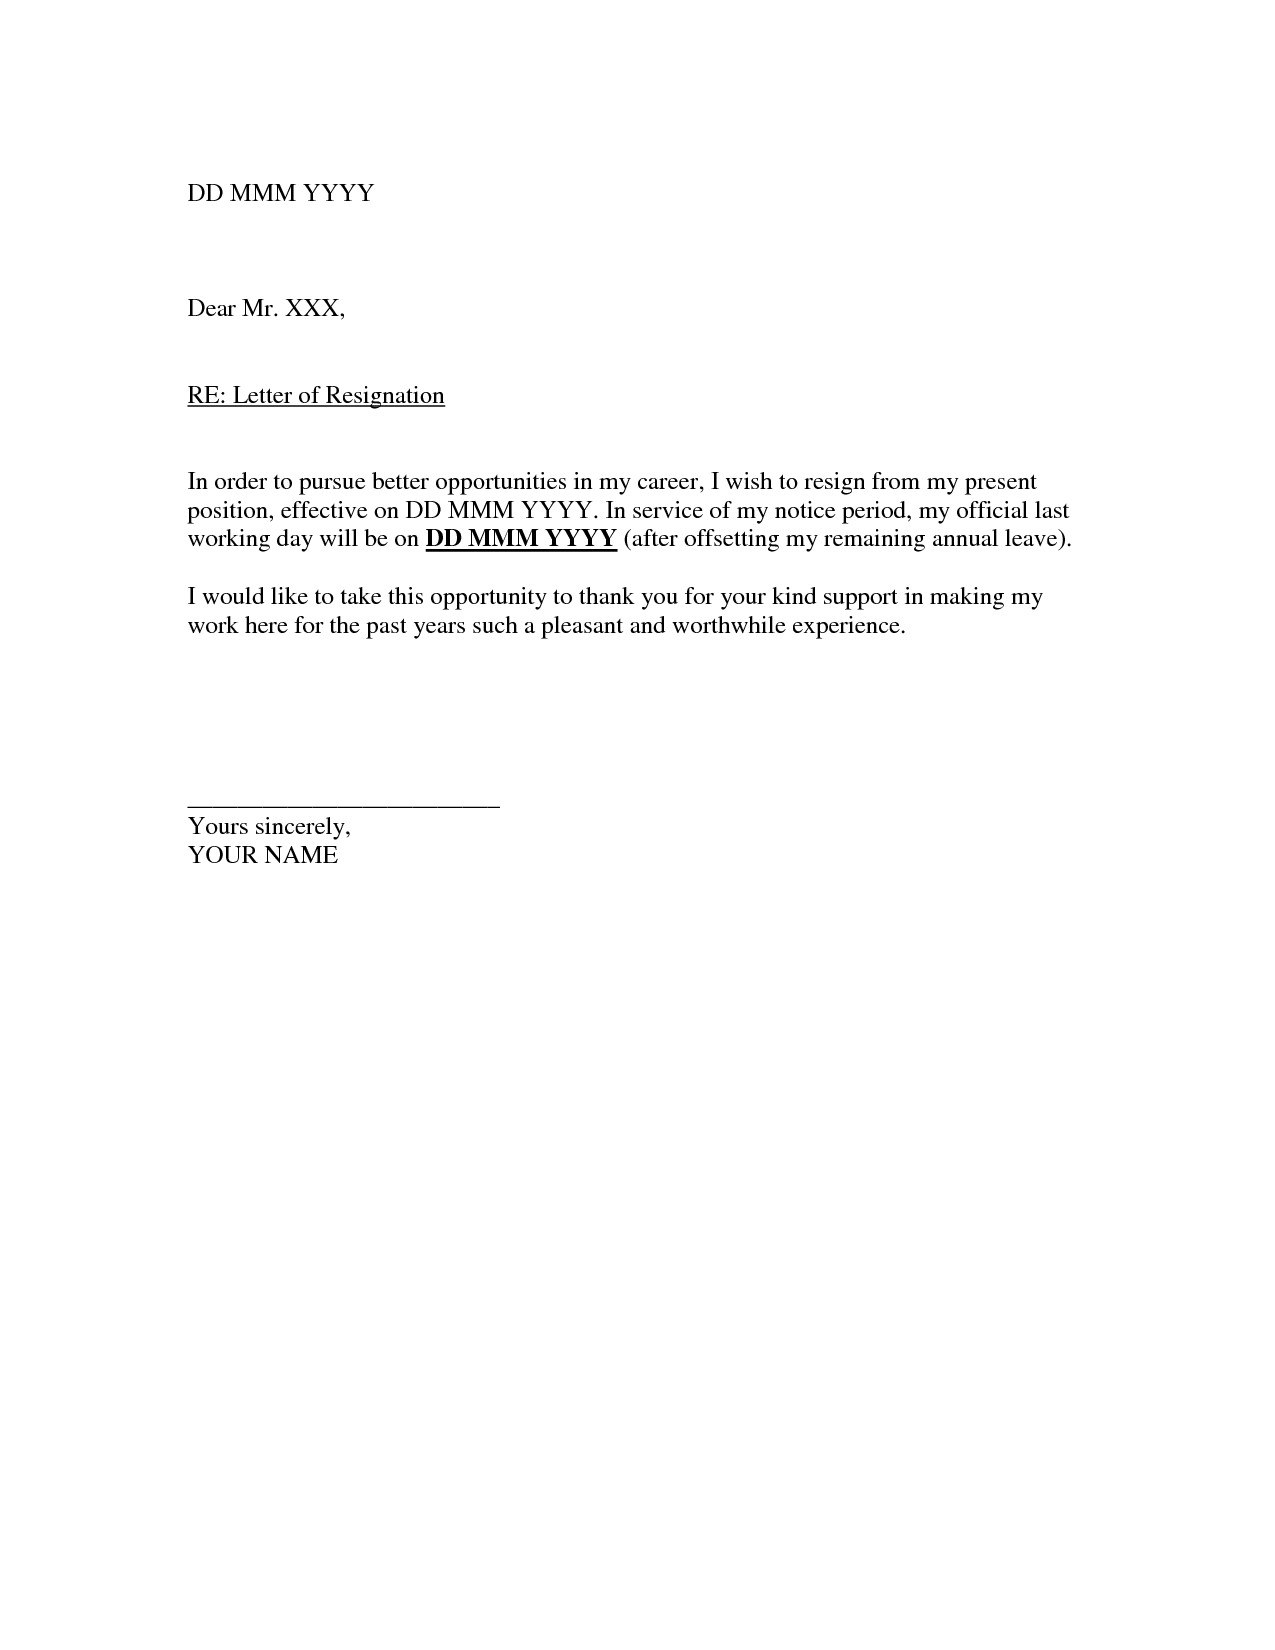 Letter Of Resignation Templates Related to Resignation Letter Template Letters Of